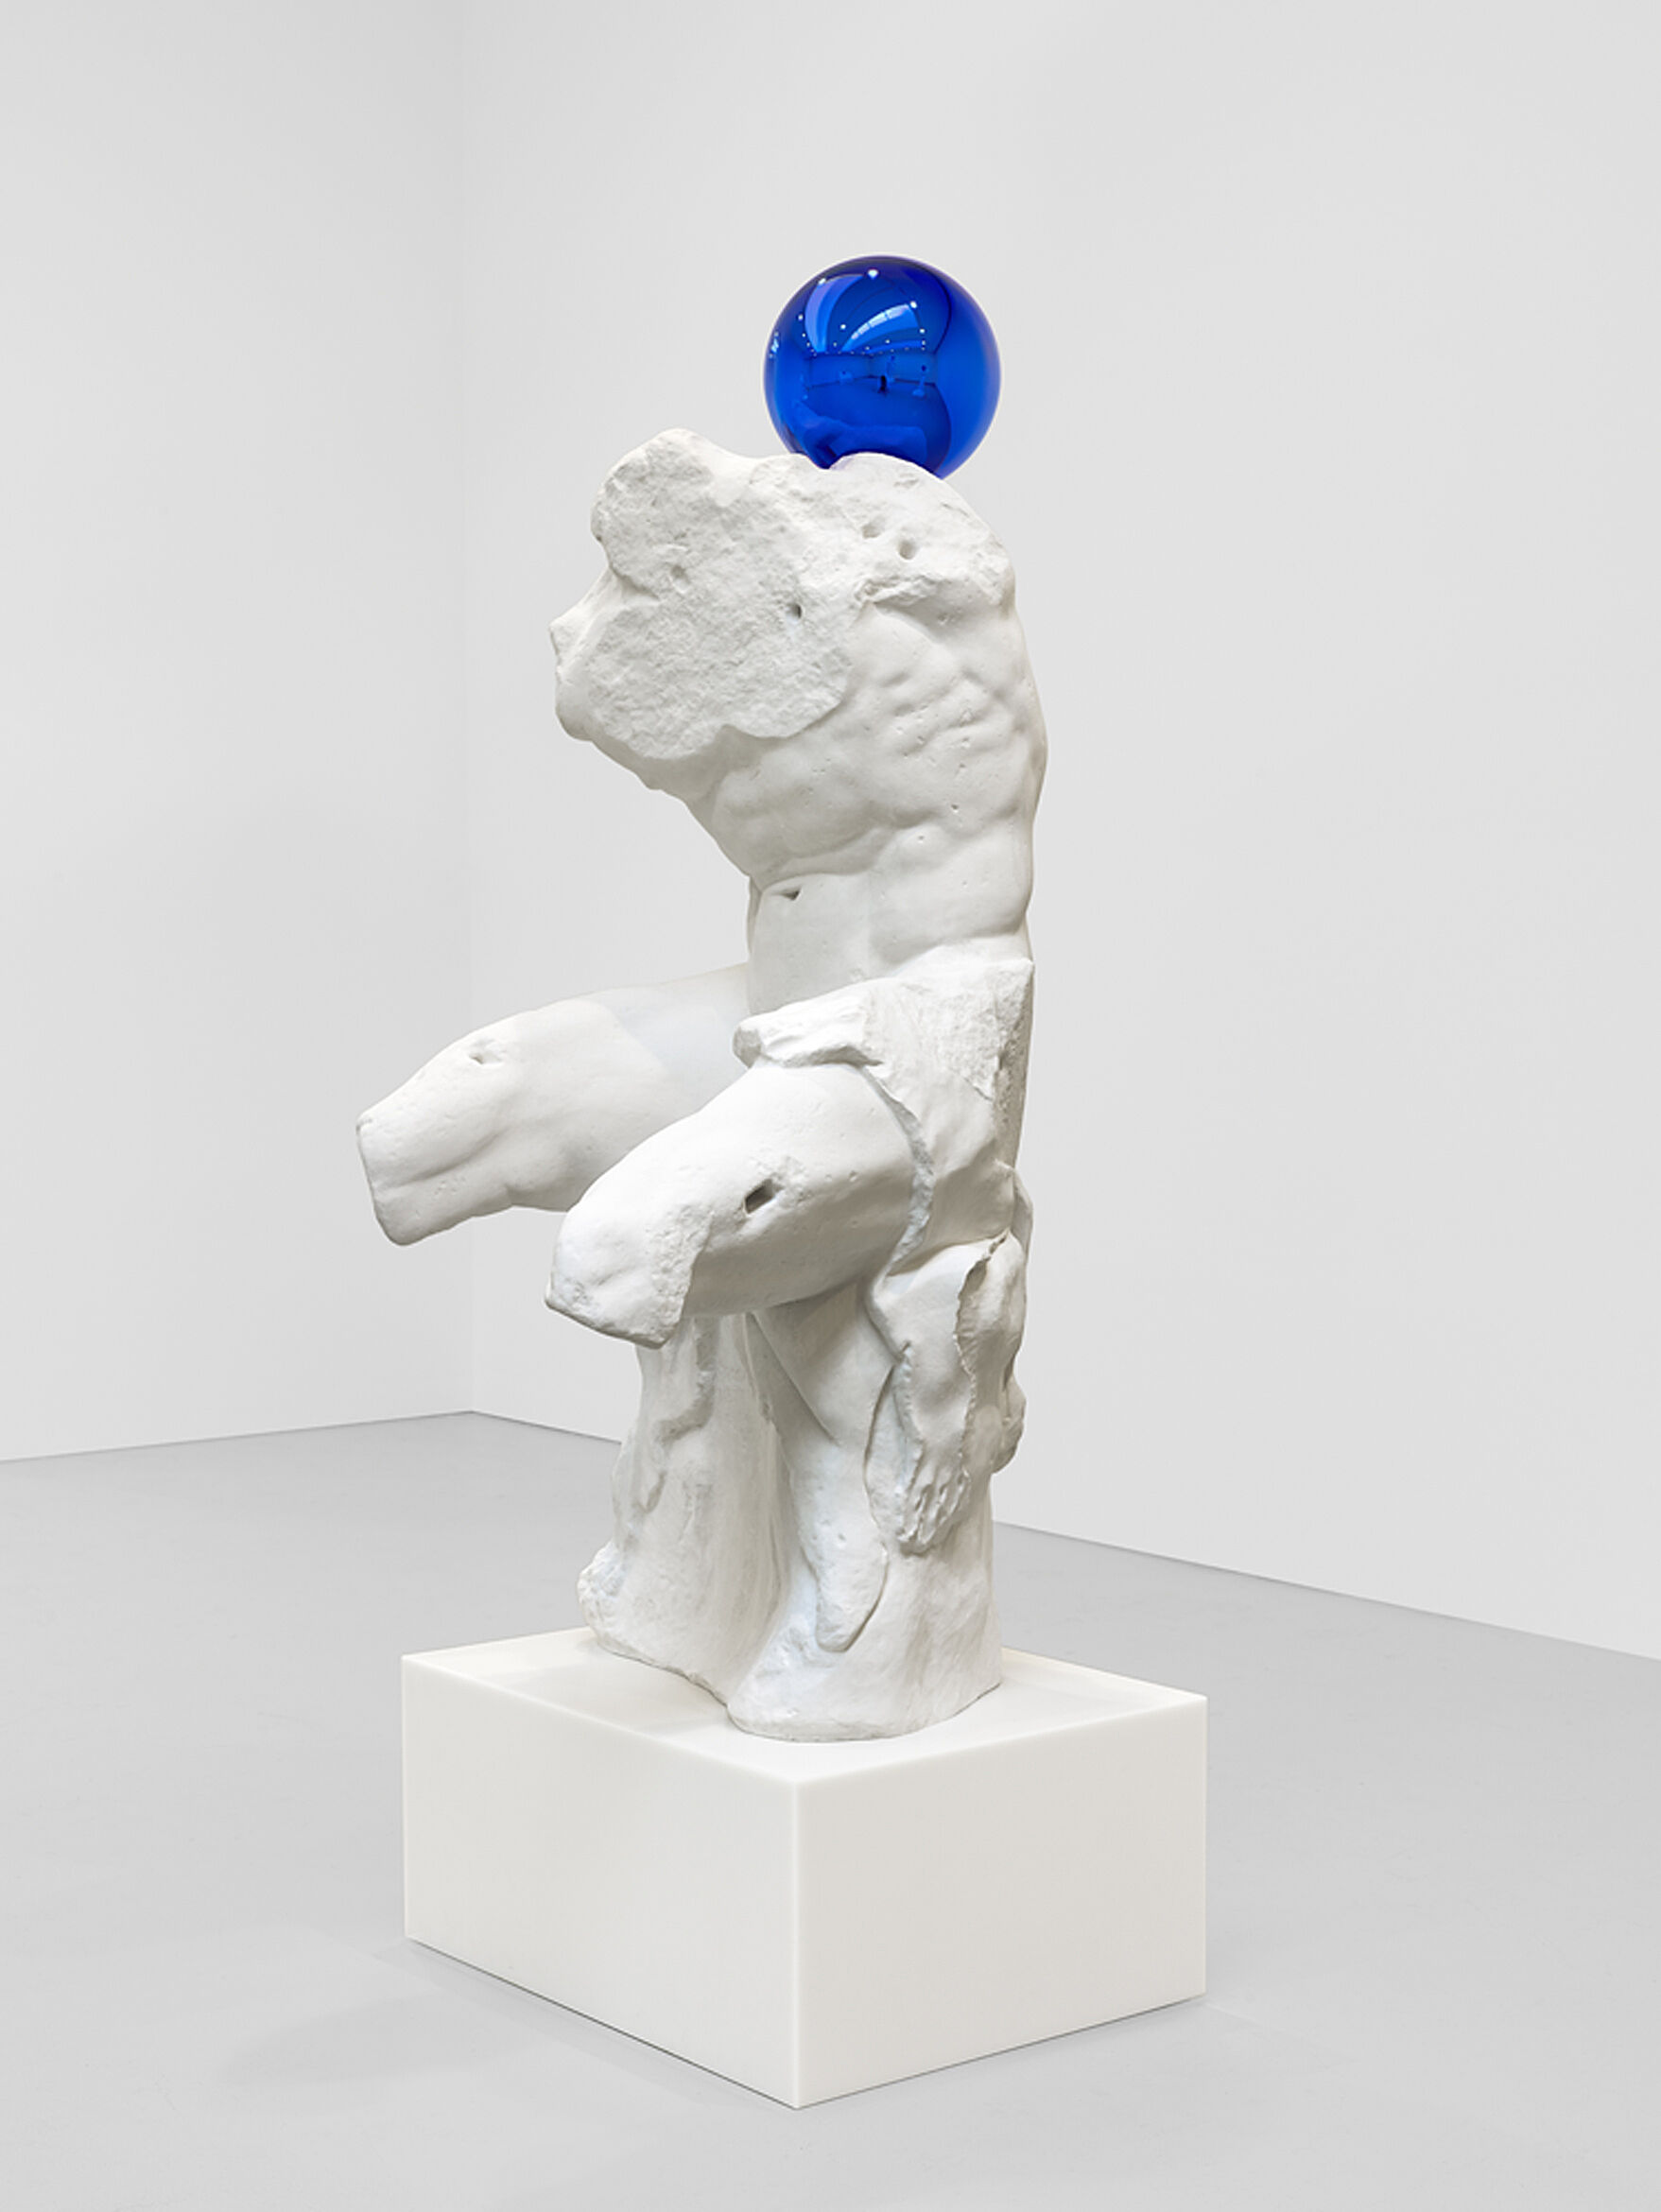 A sculpture of a nude torso with a blue ball on top.